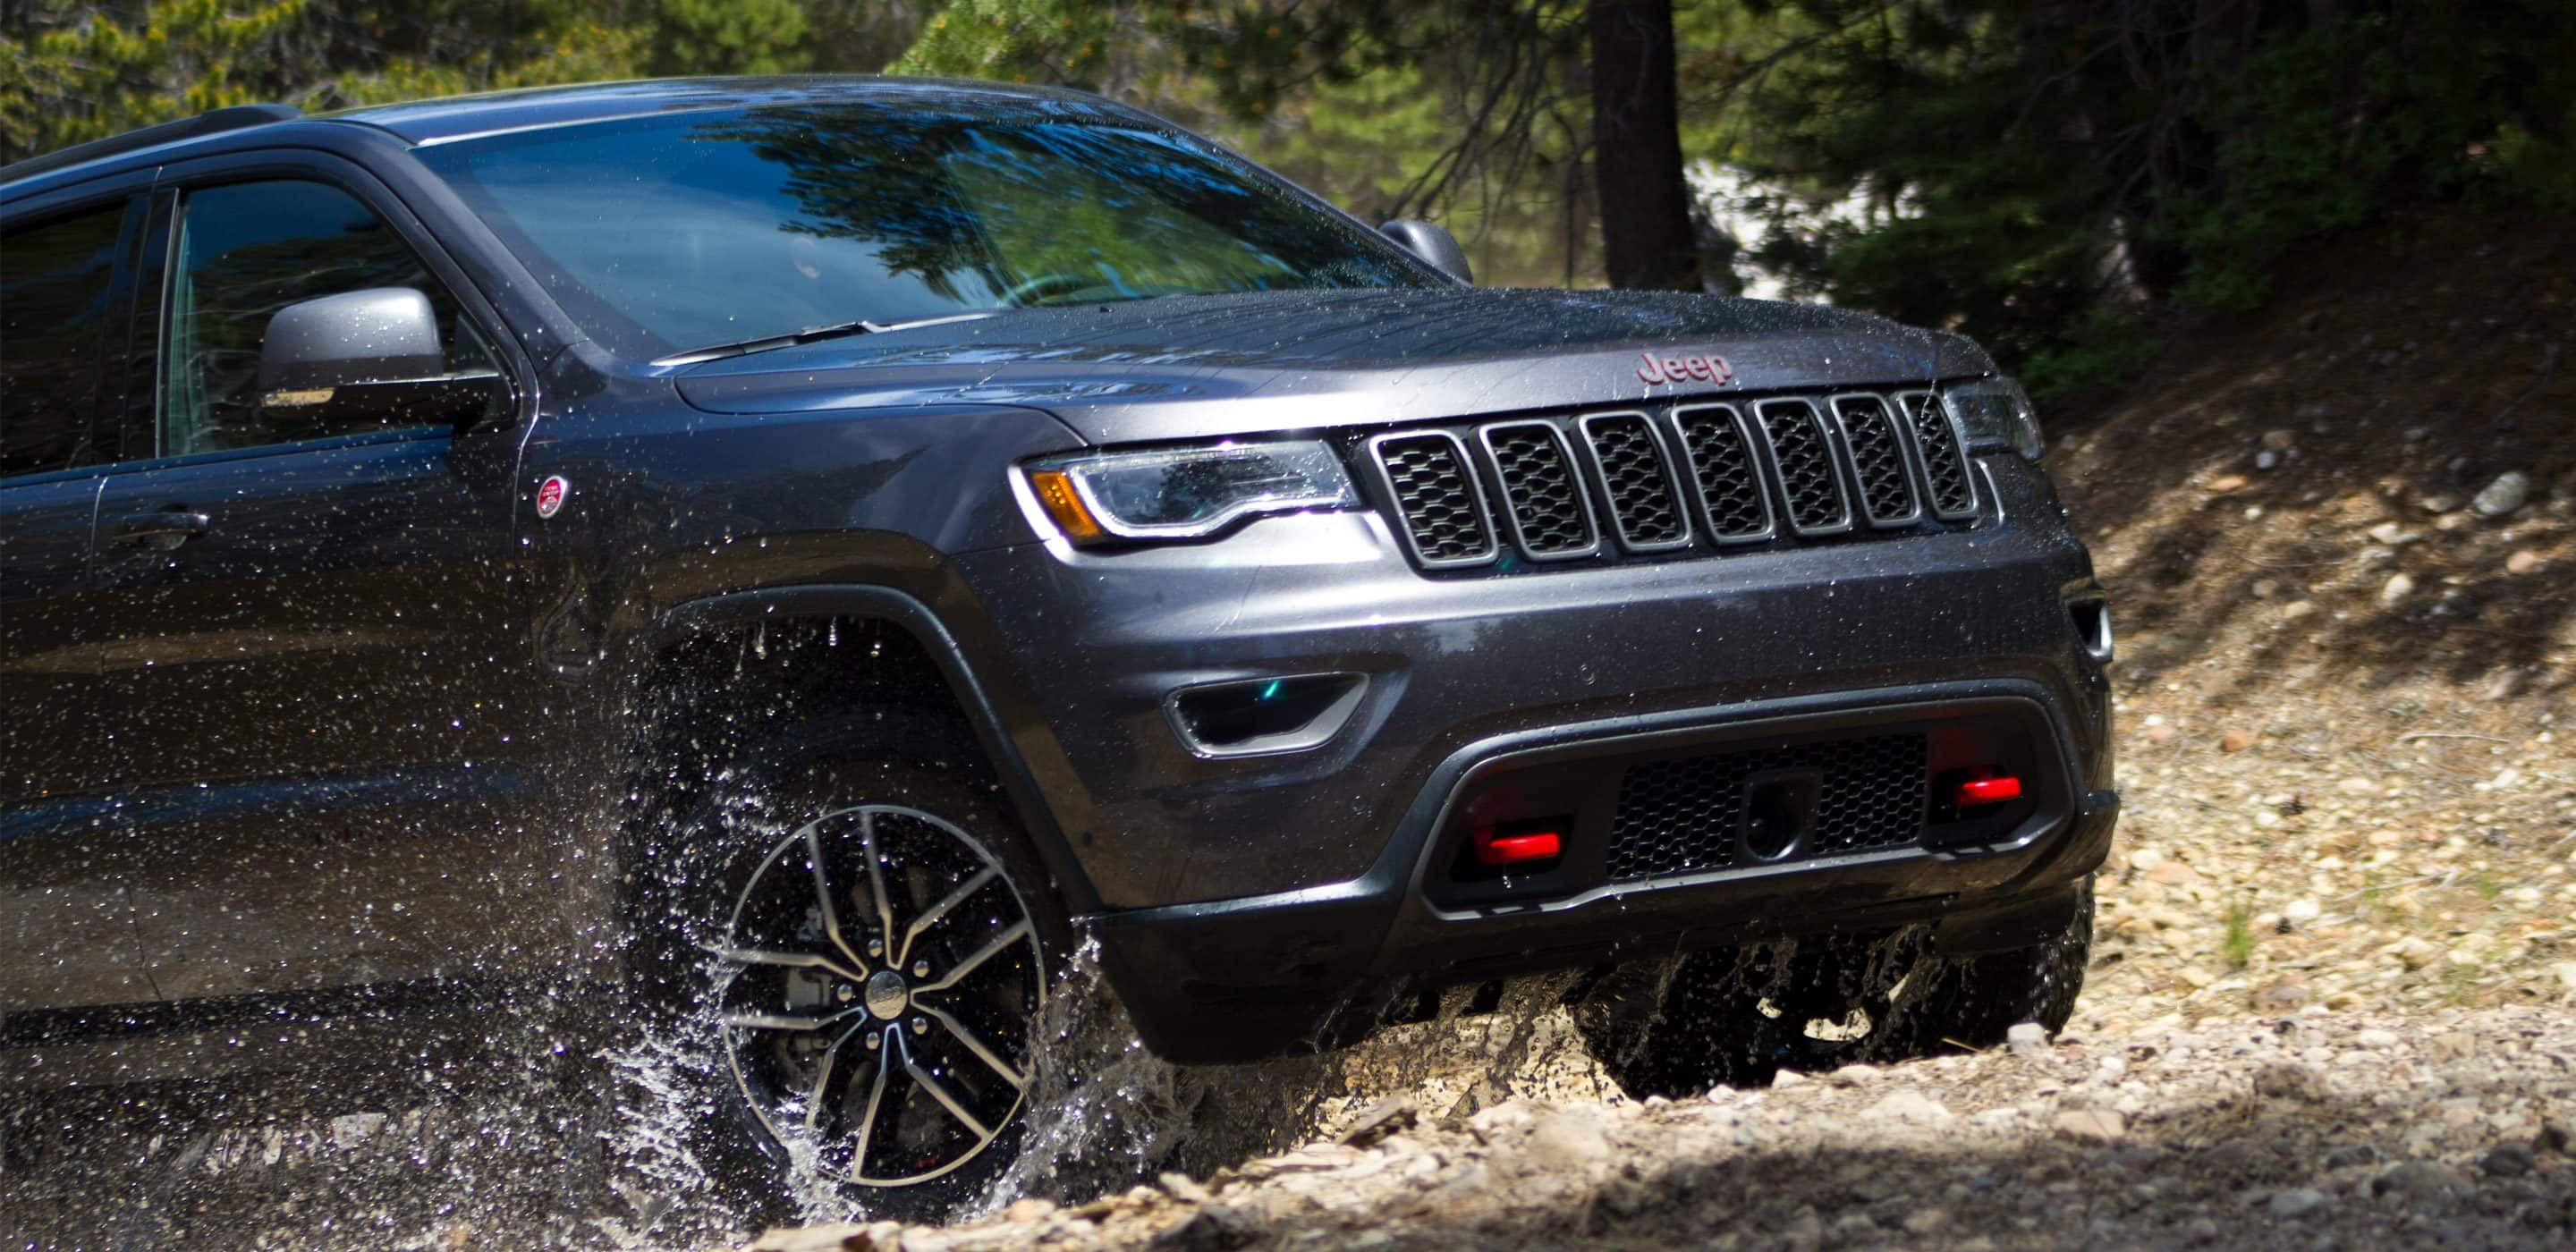 compass incentives jeep suv in motors ab htm new calgary serving trailhawk featured vehicles at big ltd